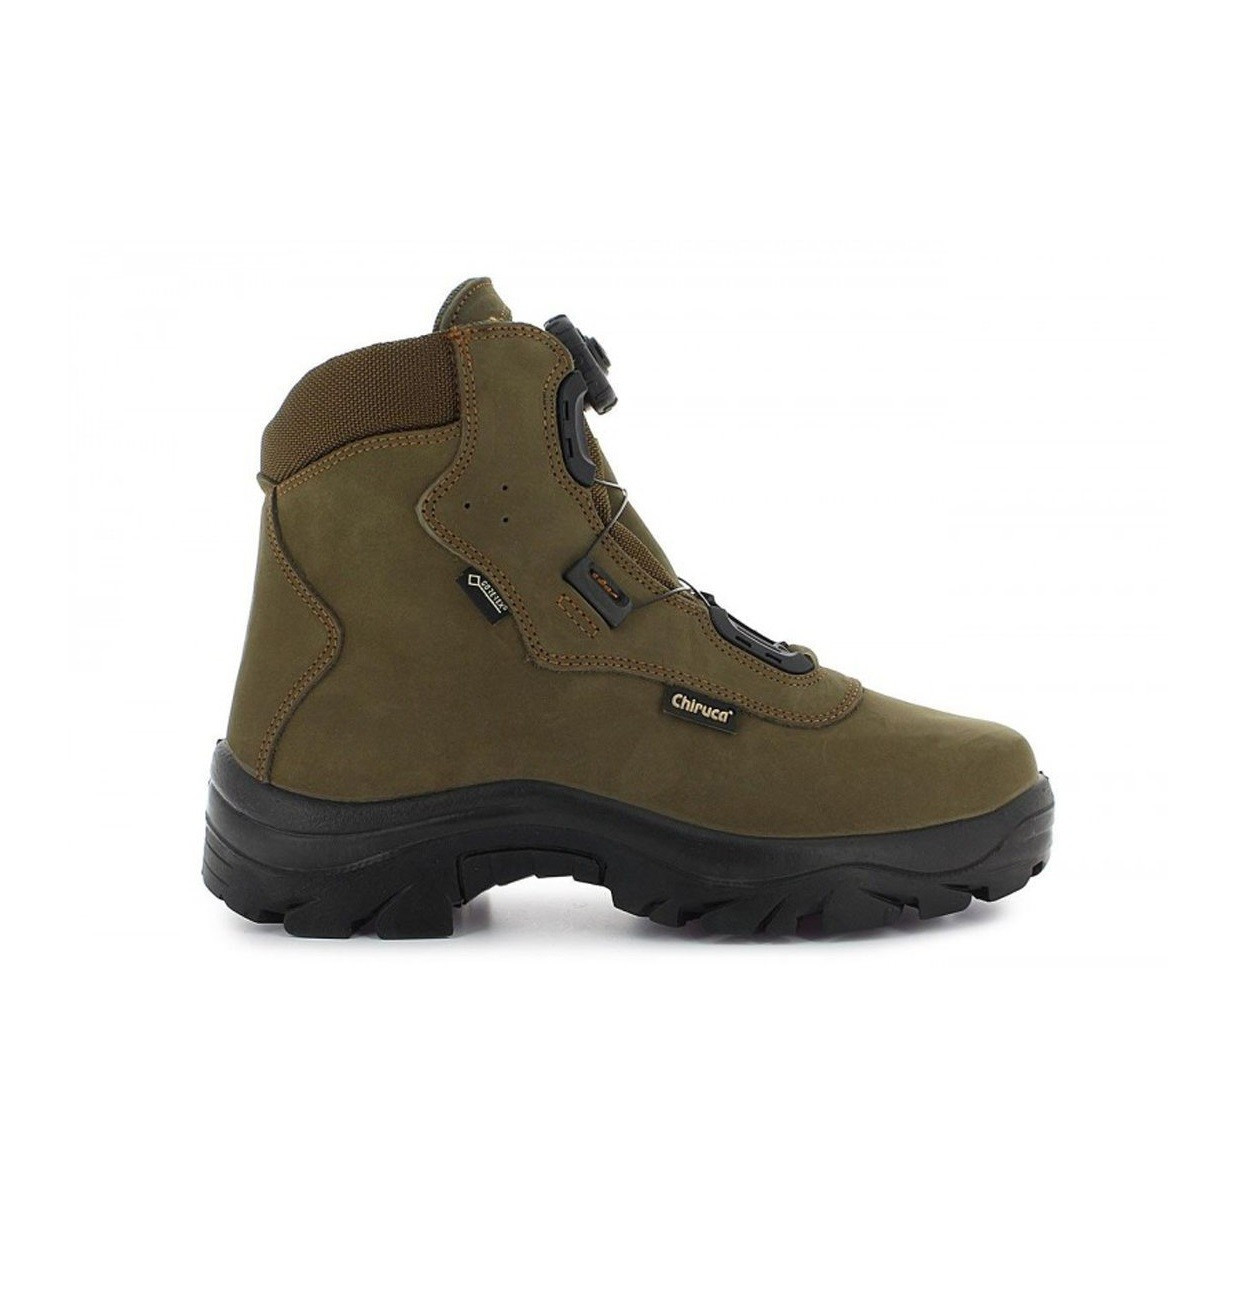 Chaussures Chaussures Labrador Boa GTX Chiruca - 2